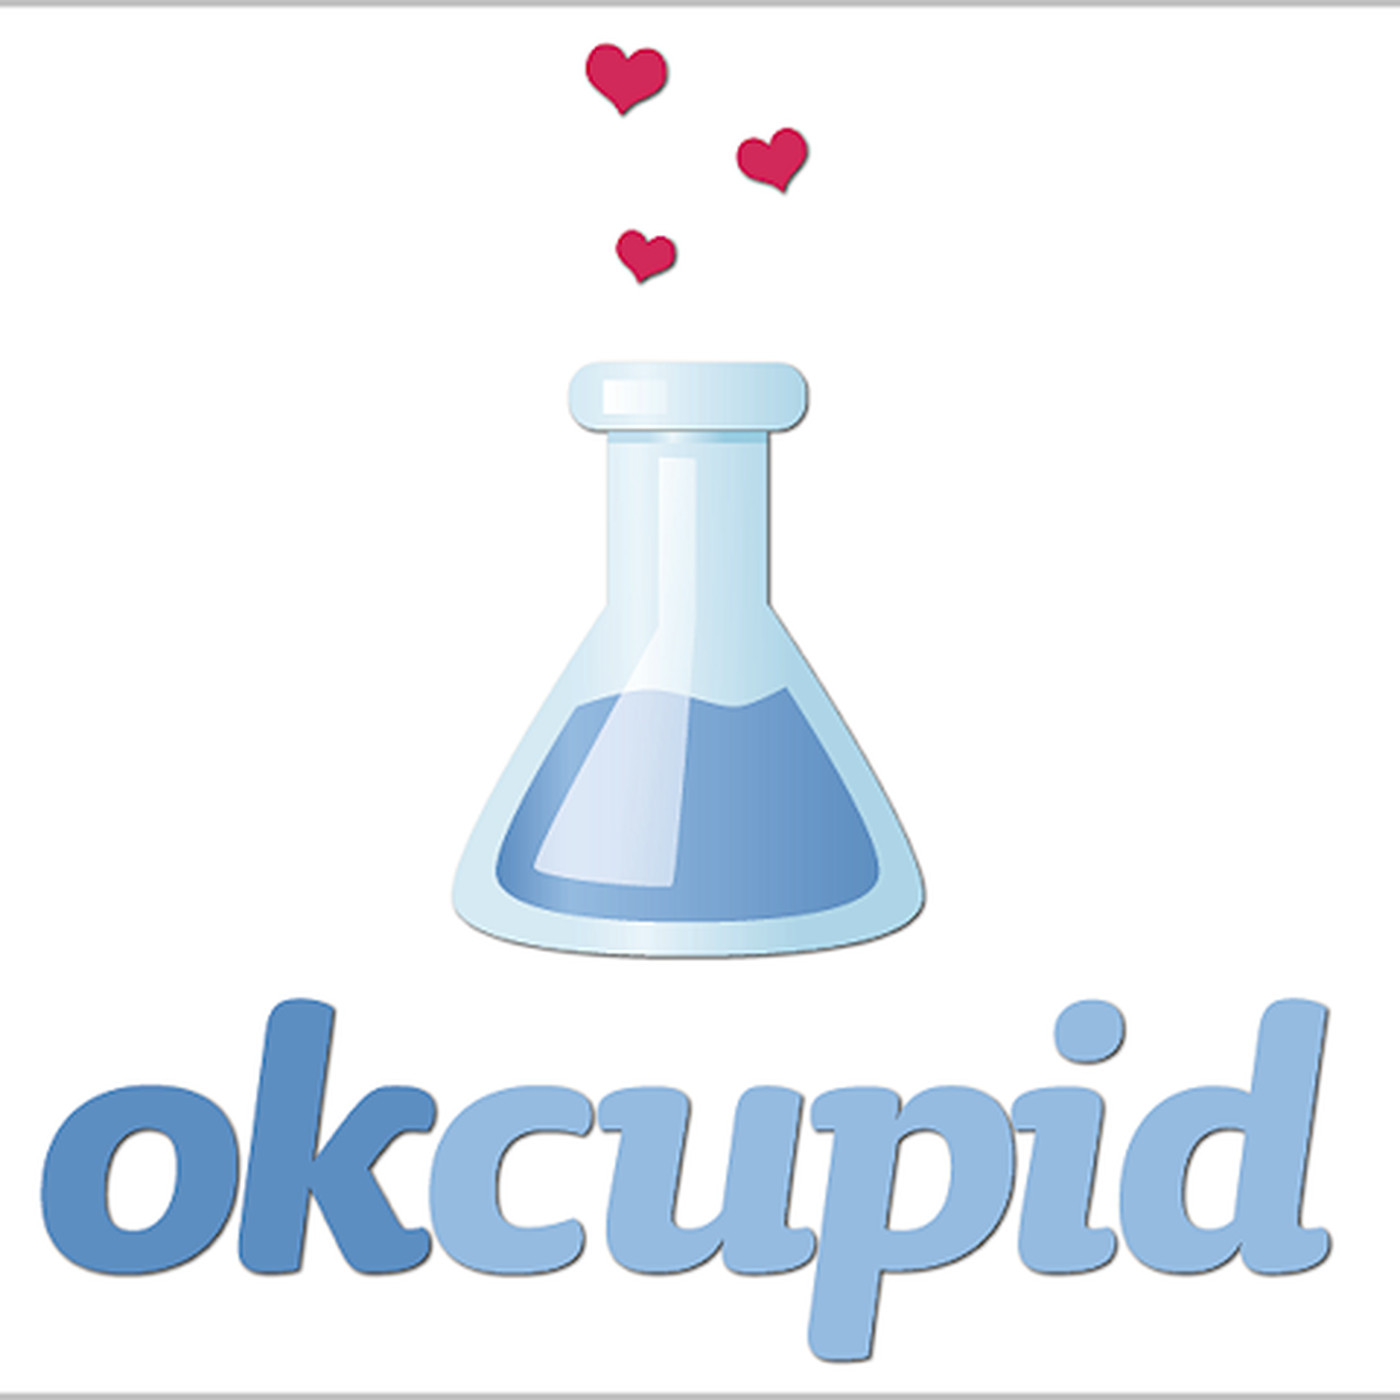 OkCupid Takes Public Stand Against New Mozilla CEO - Vox